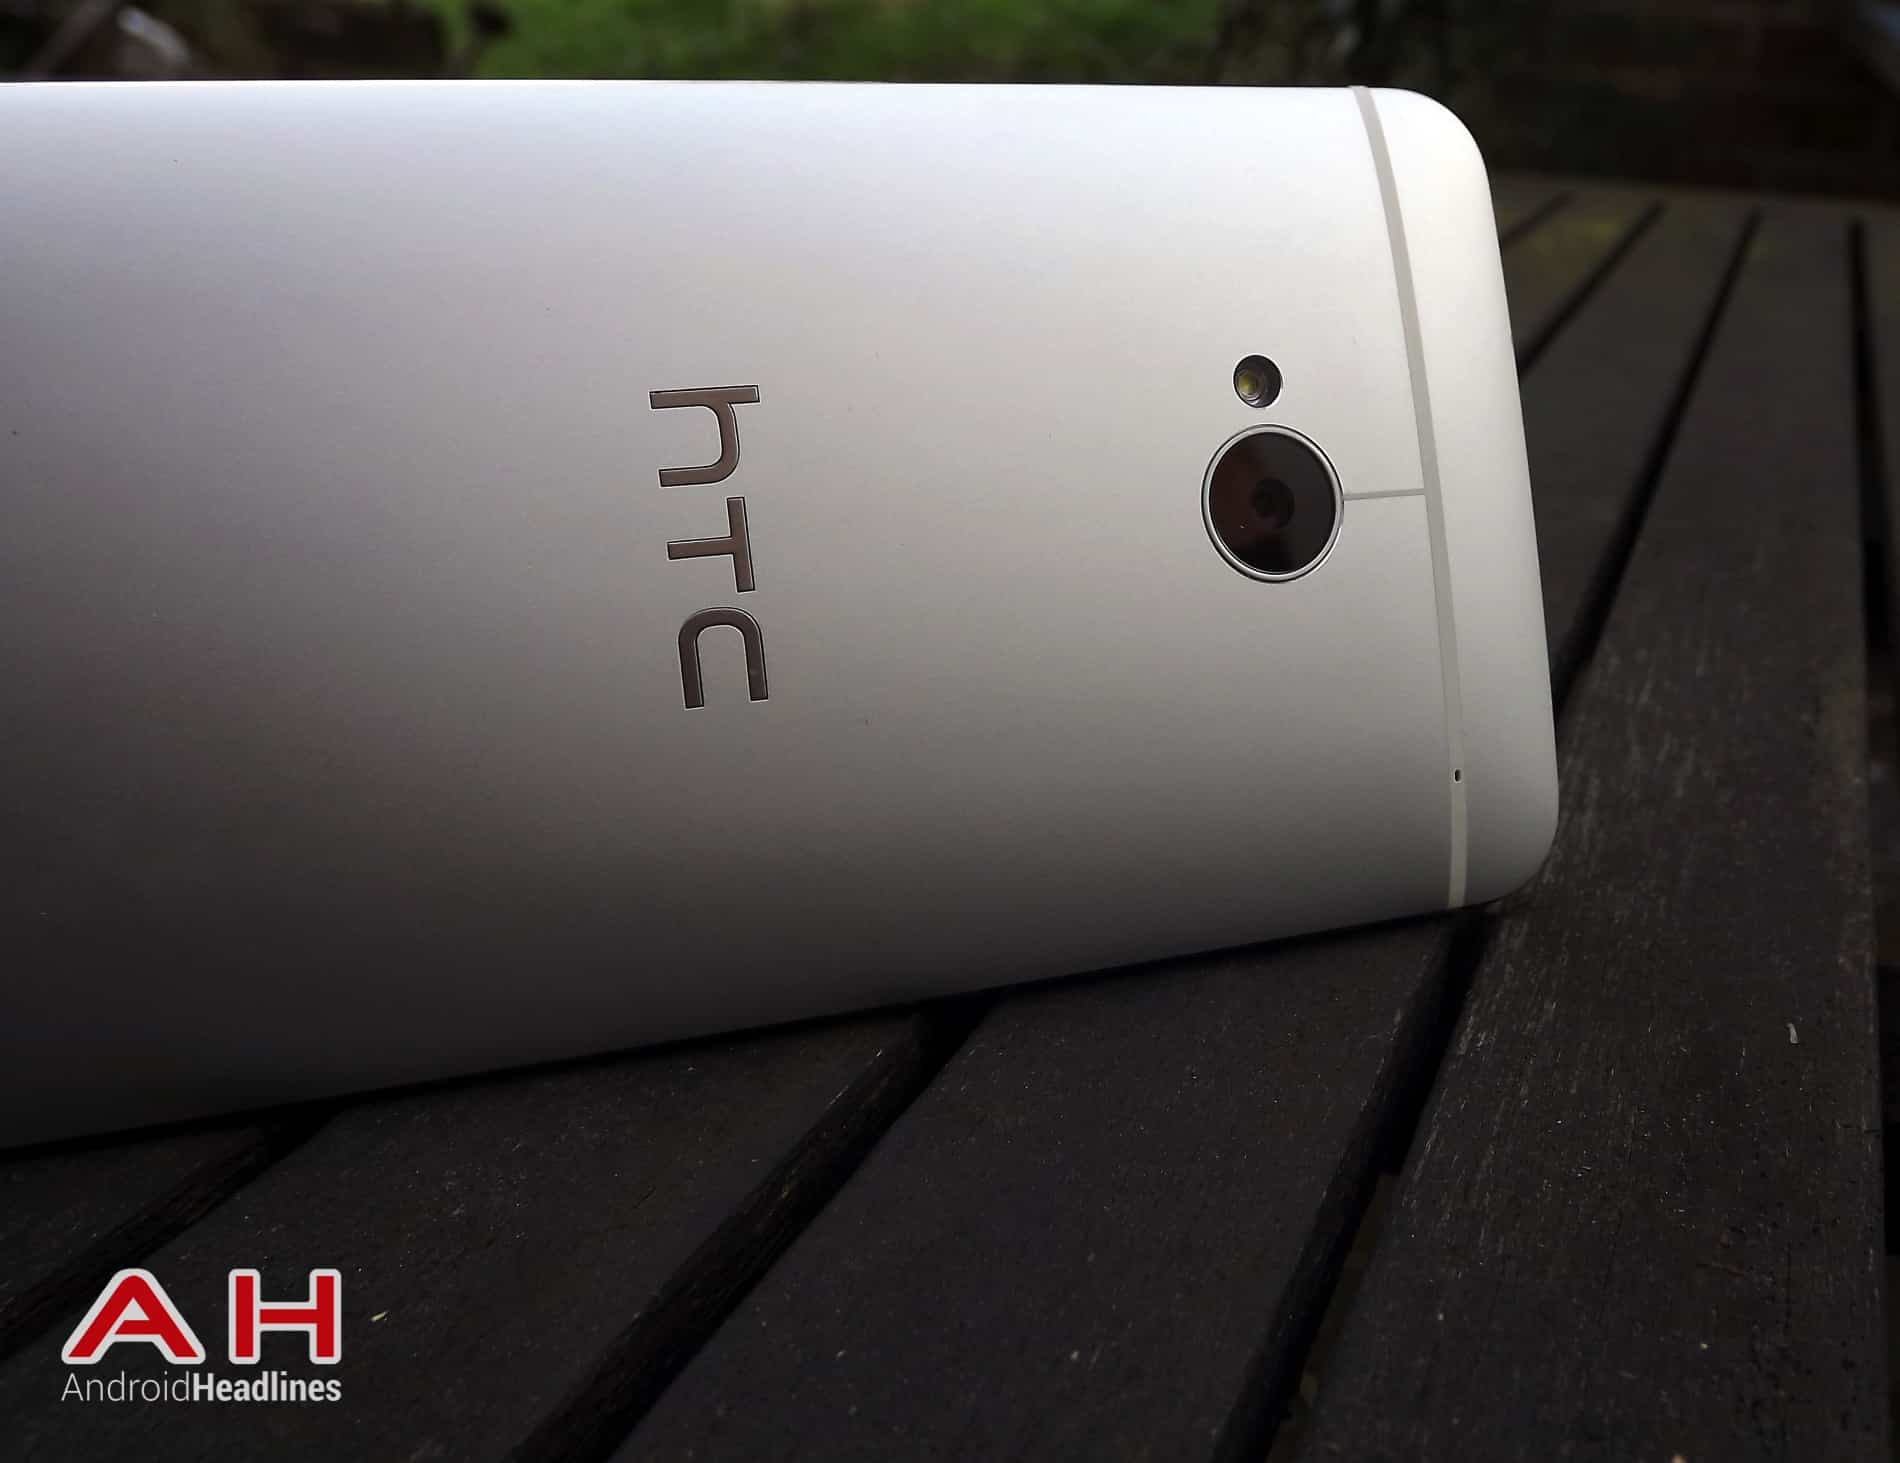 HTC One M7 HD AH 19